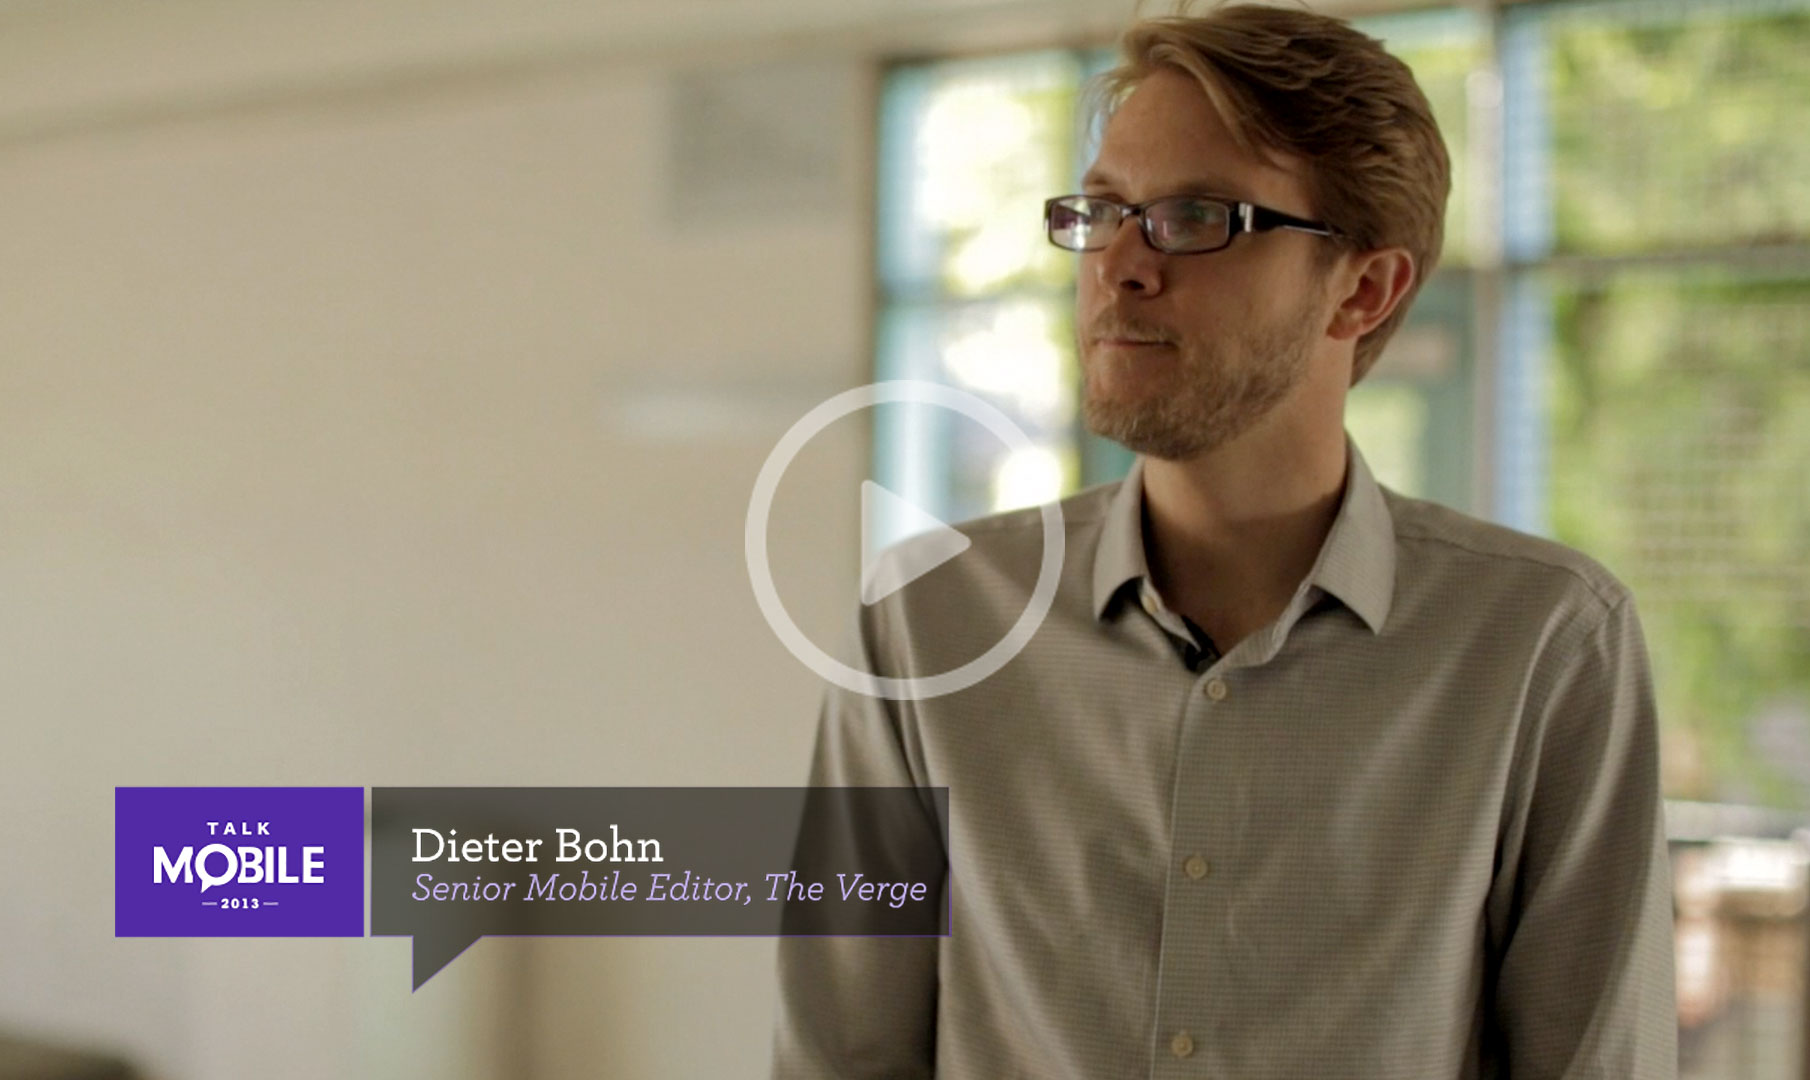 Dieter Bohn, Senior Mobile Editor at The Verge talks about social as a service.